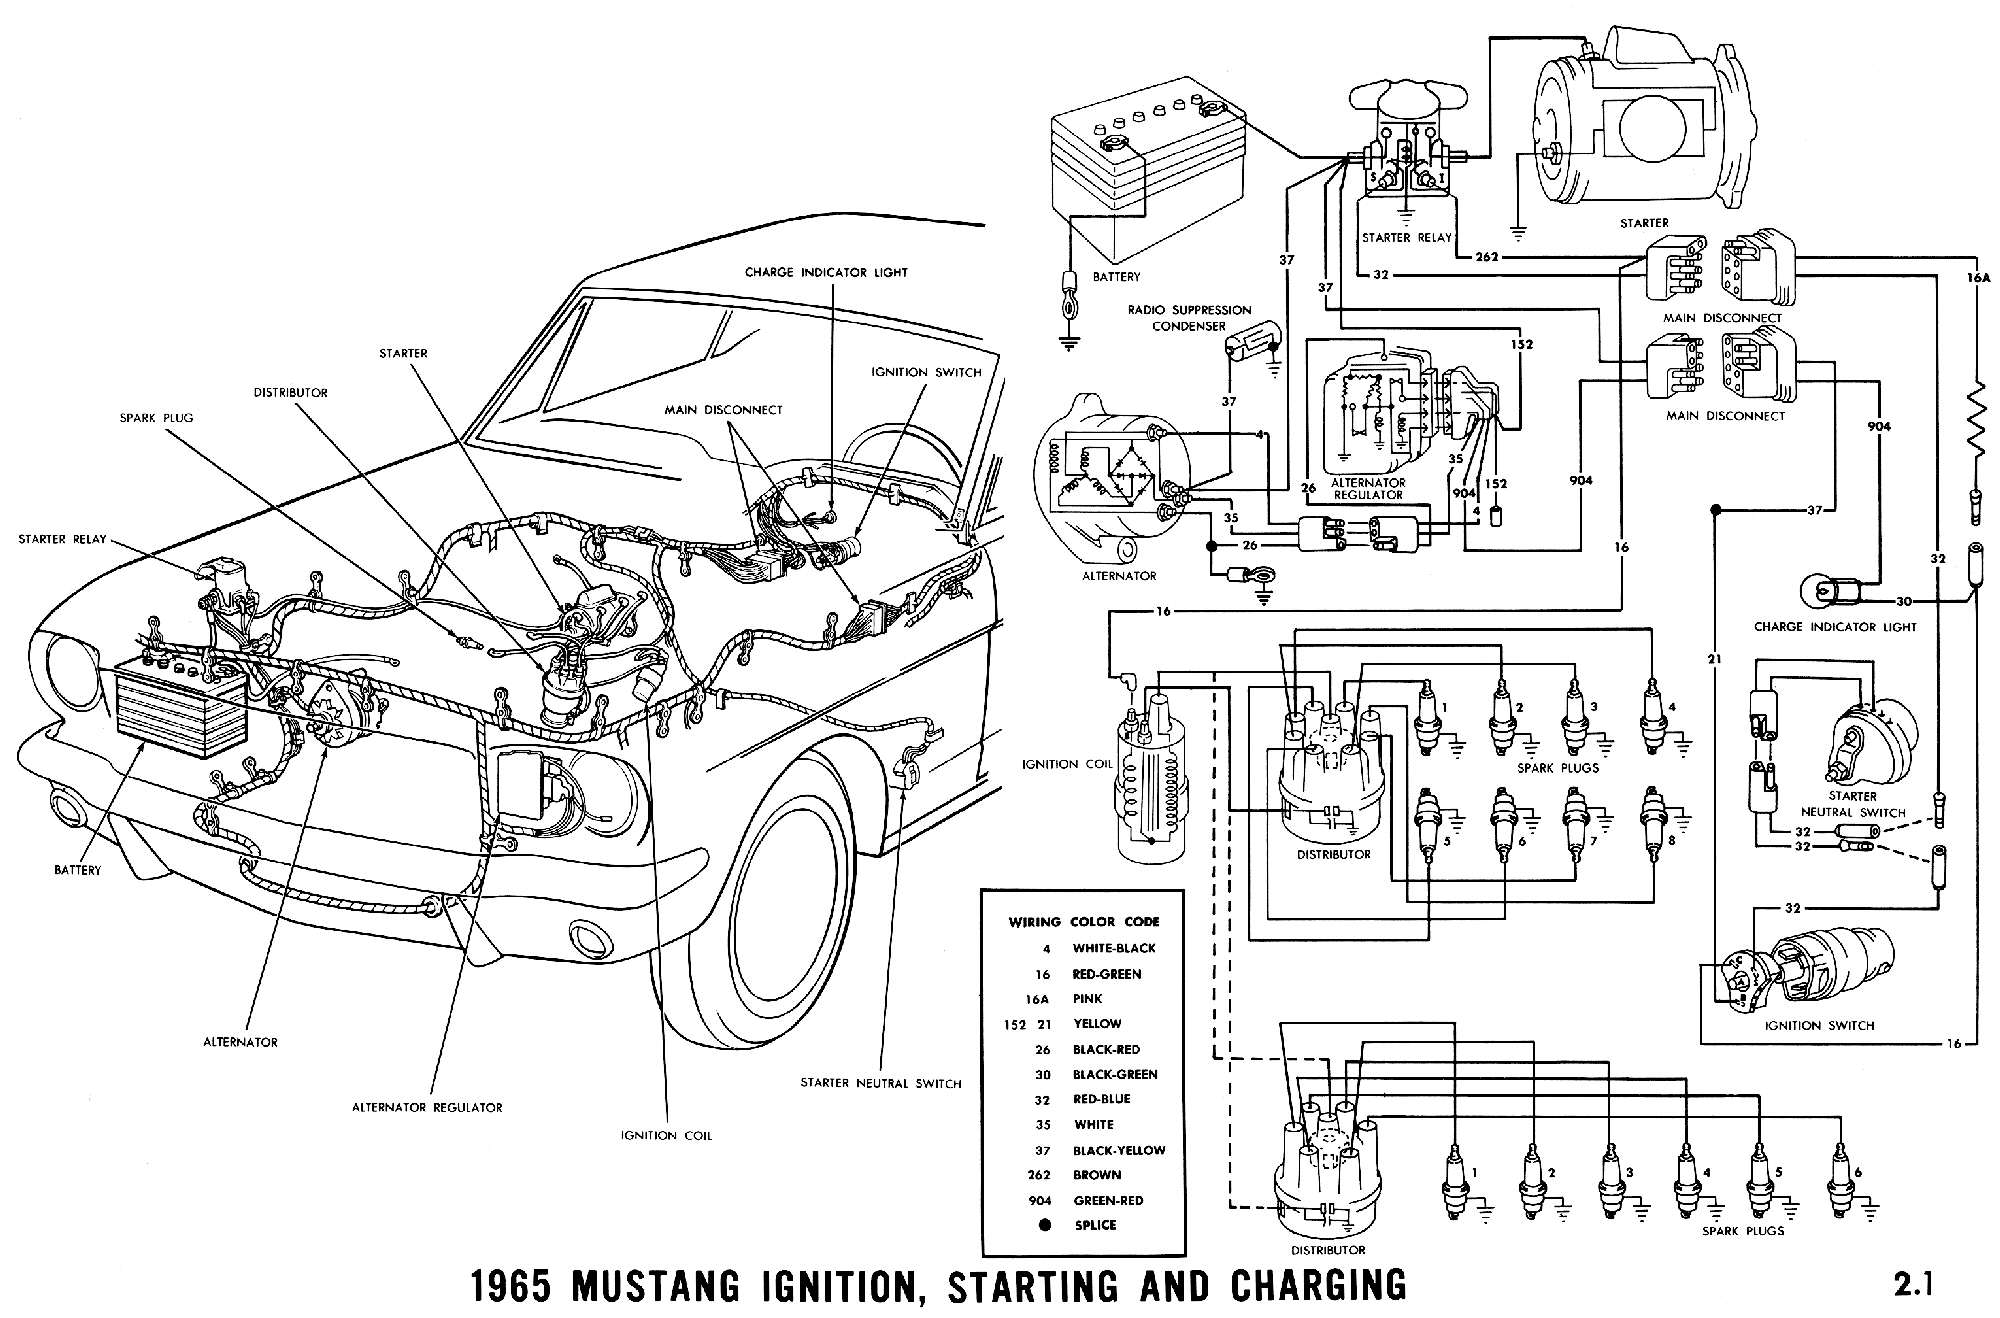 1965 Mustang Wiring Diagrams Average Joe Restoration Basic Starter Motor Diagram Charging Pictorial And Schematic